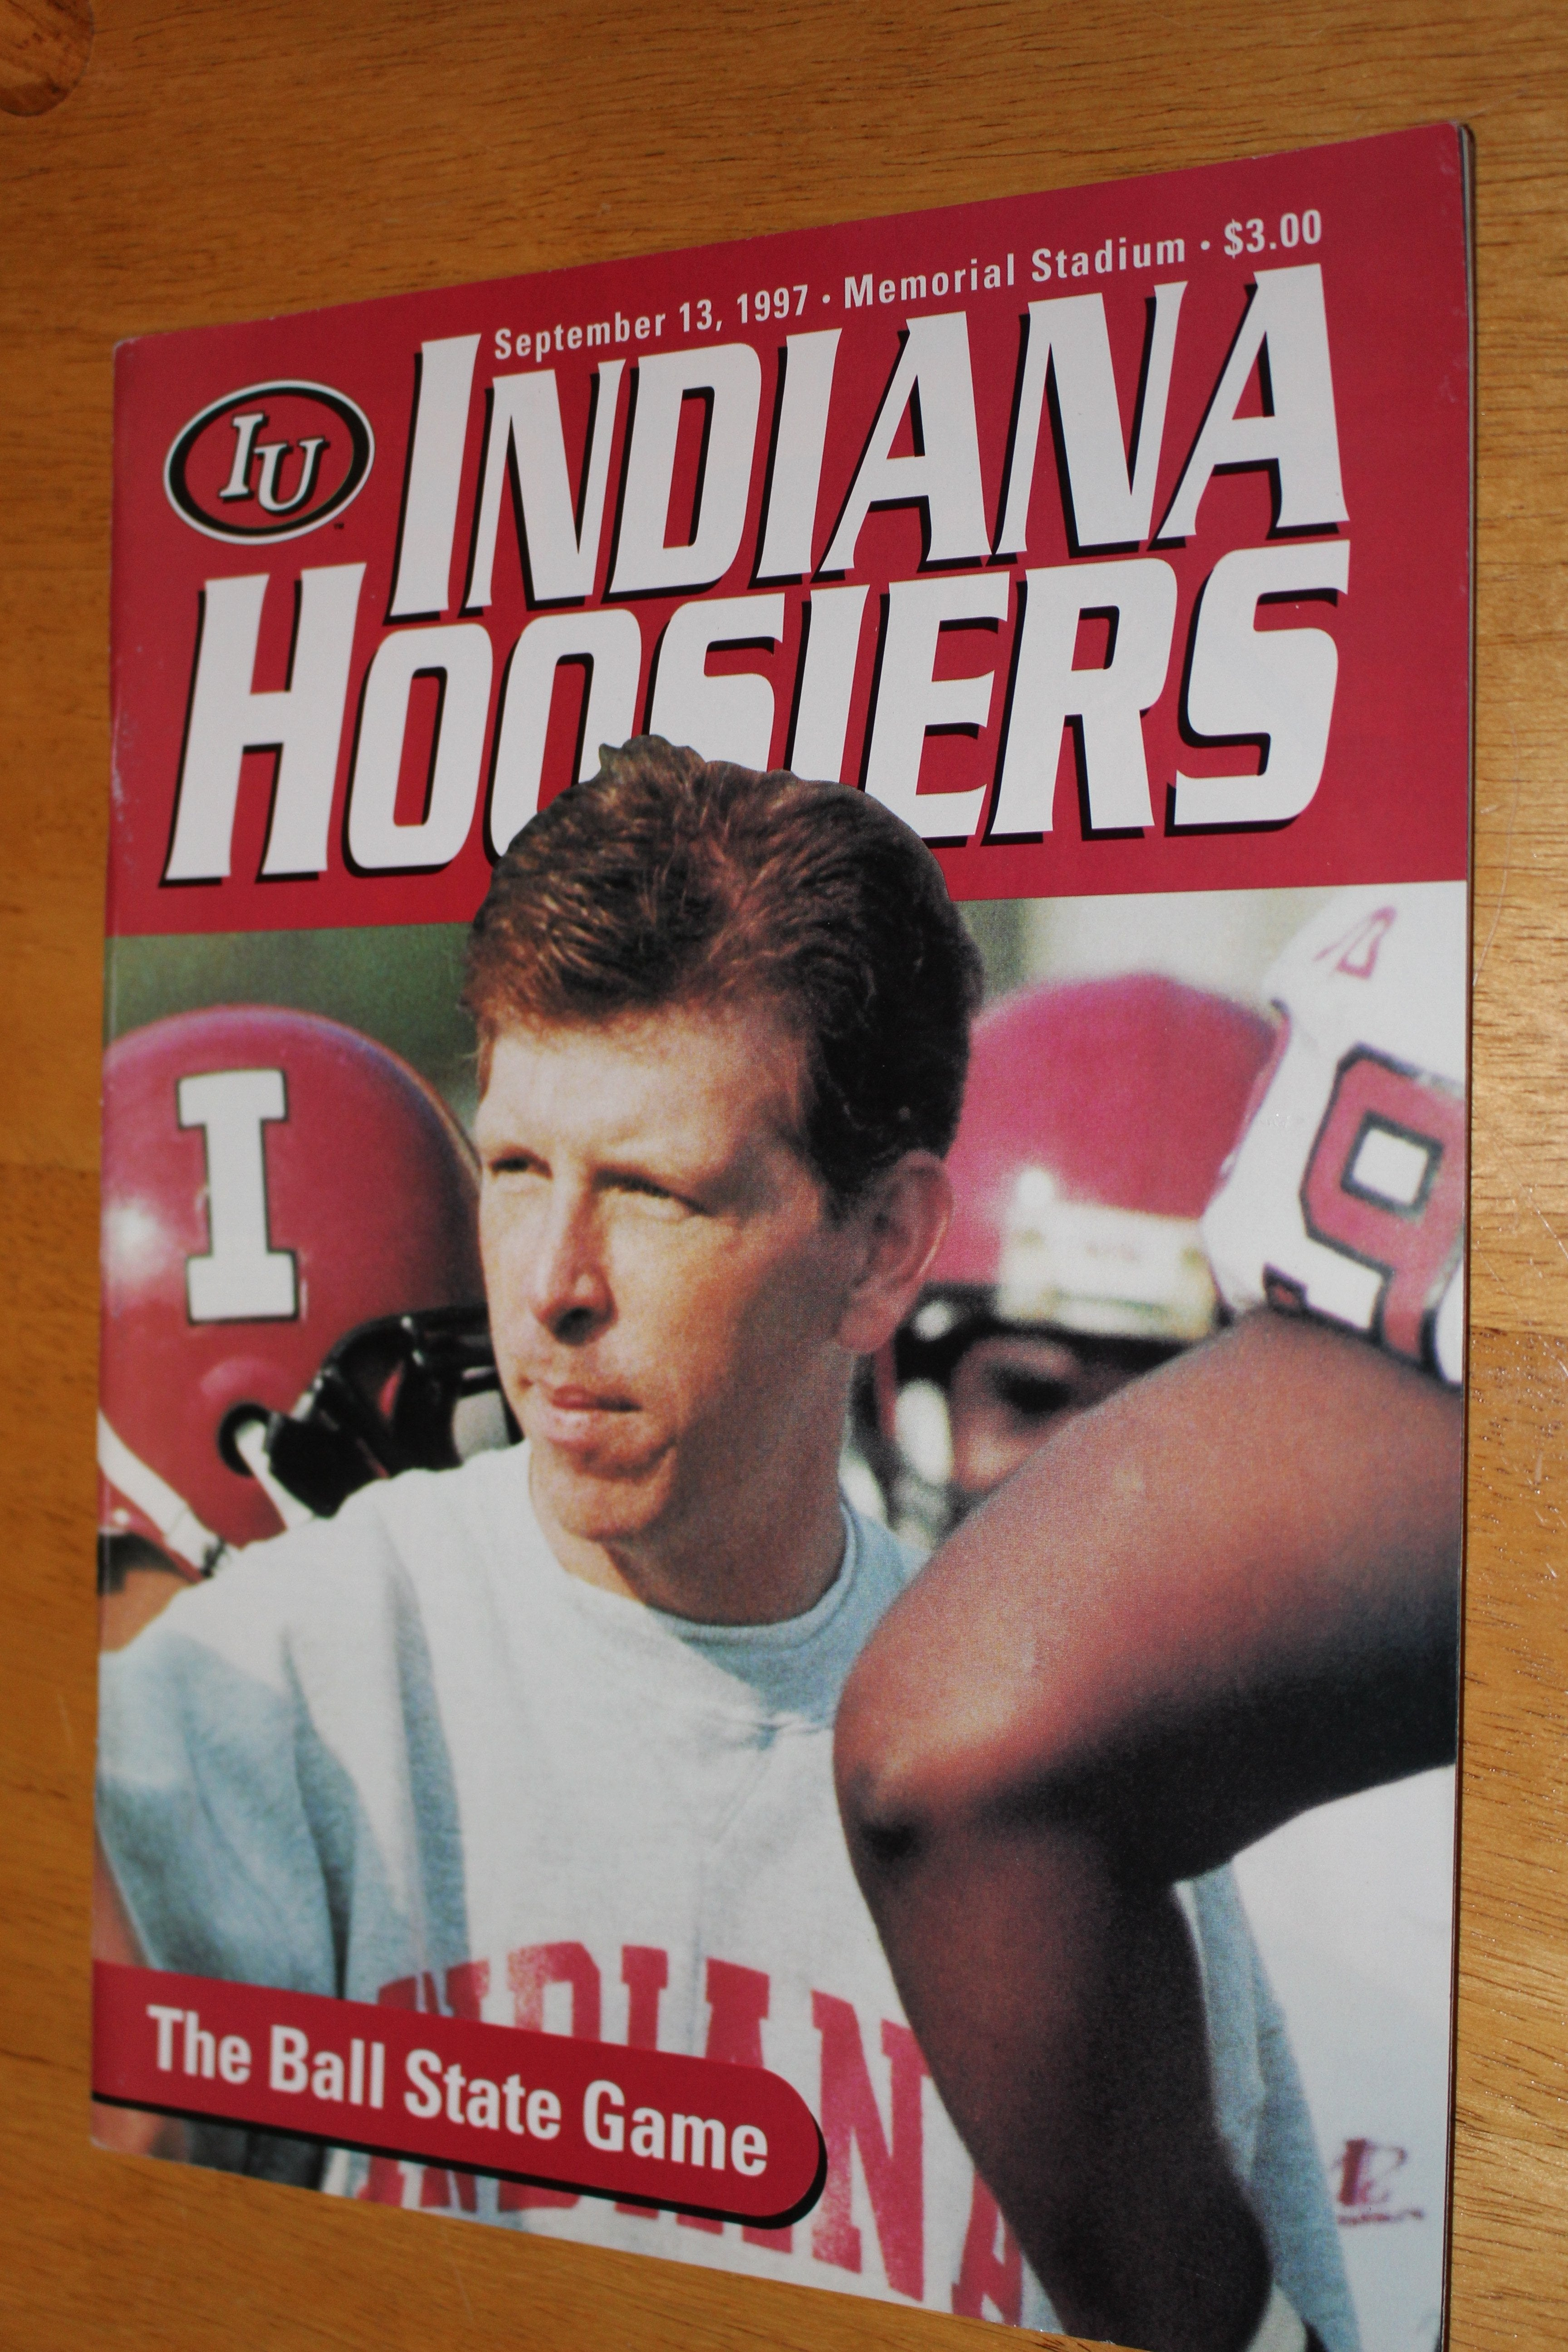 1997 Indiana University vs Ball State Football Game Program - Vintage Indy Sports